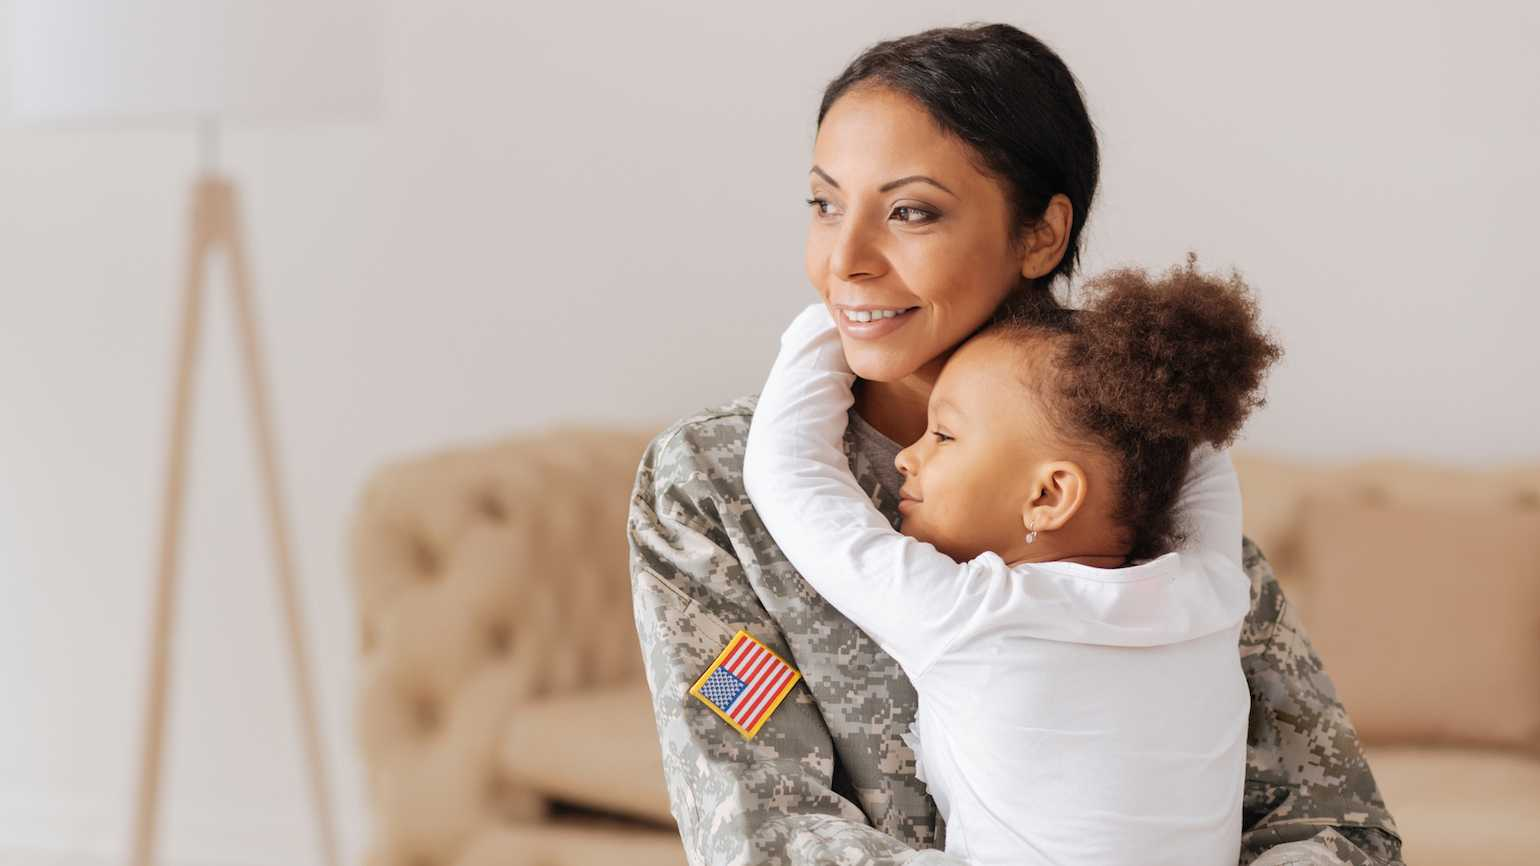 May is National Military Appreciation Month.